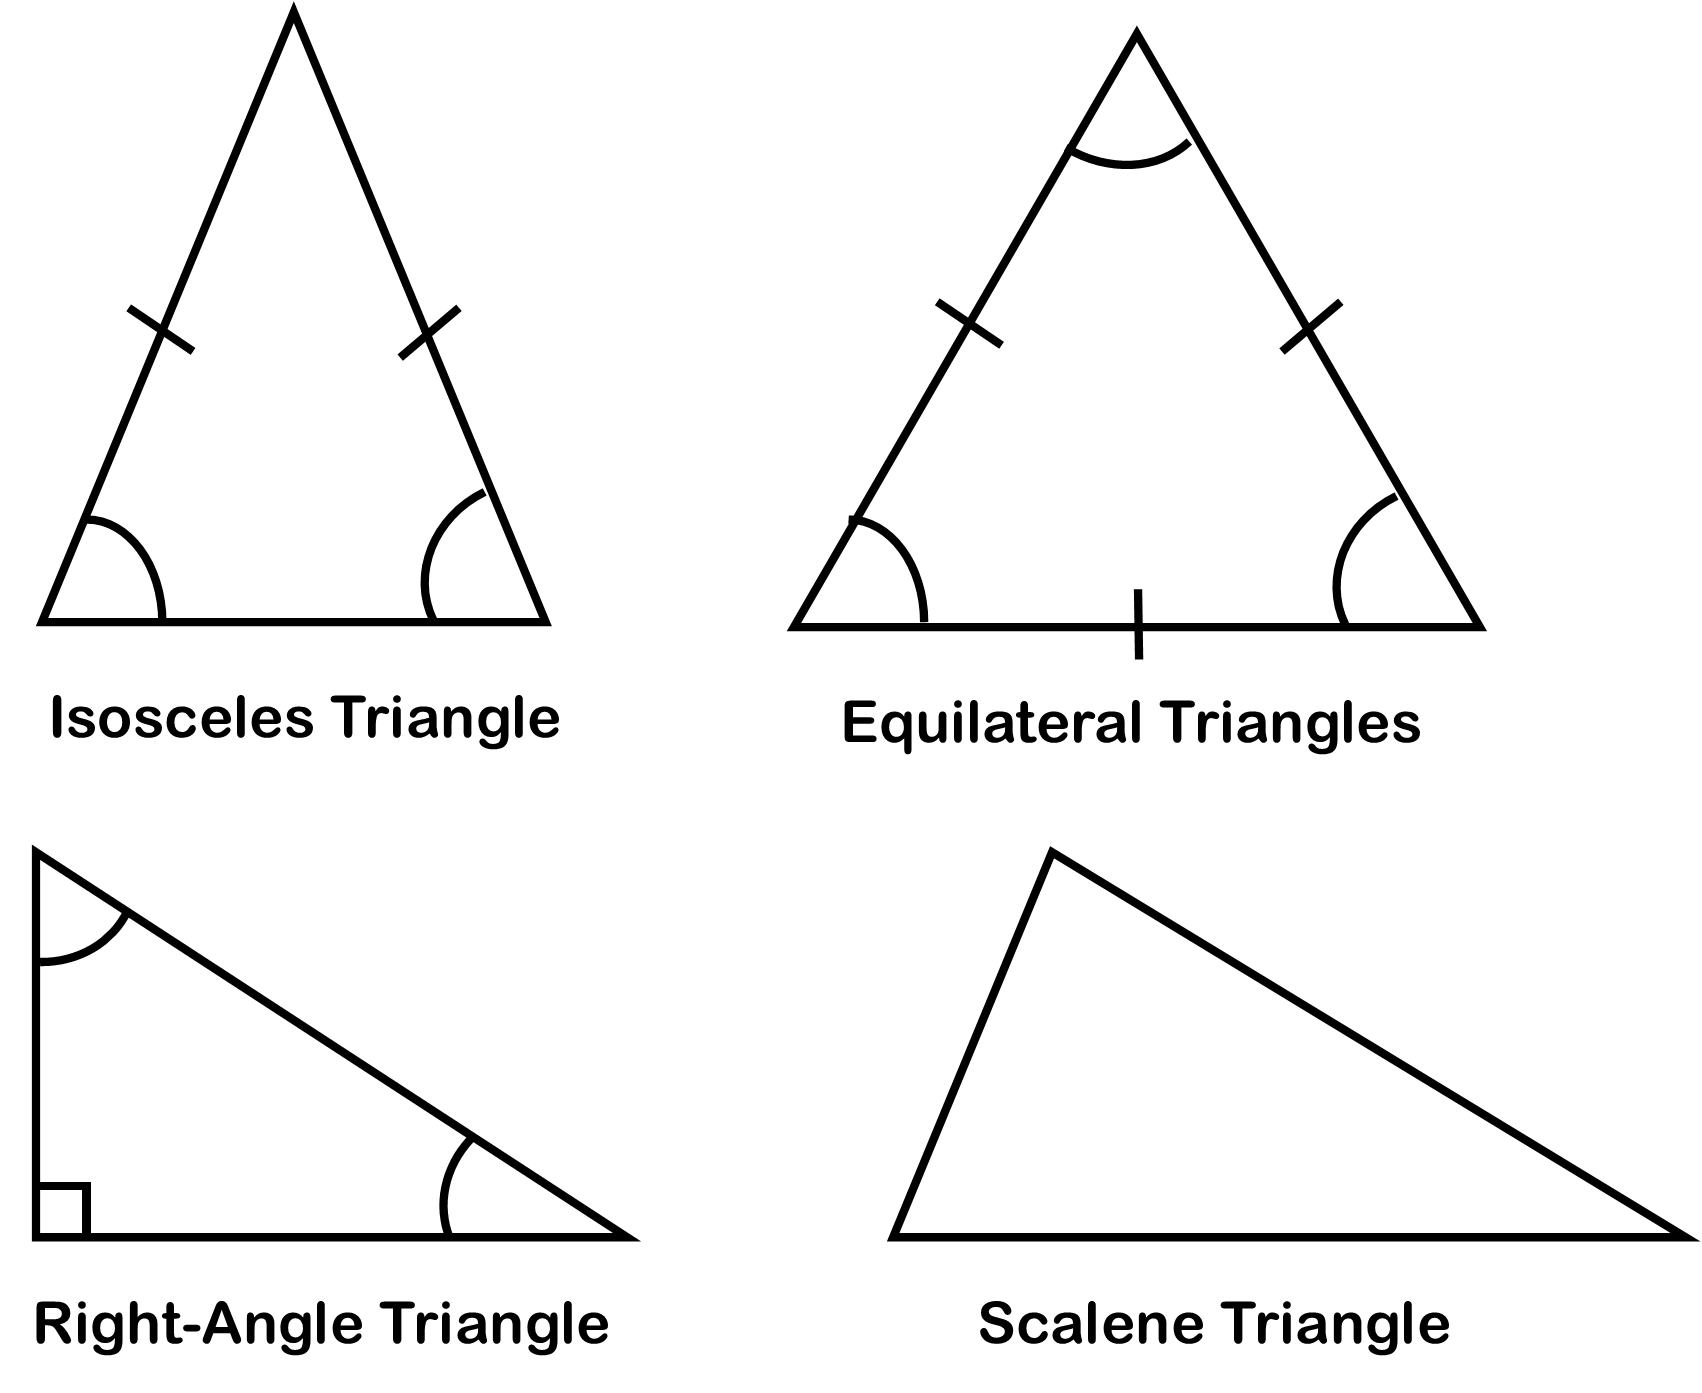 Triangles Worksheet Grade 5